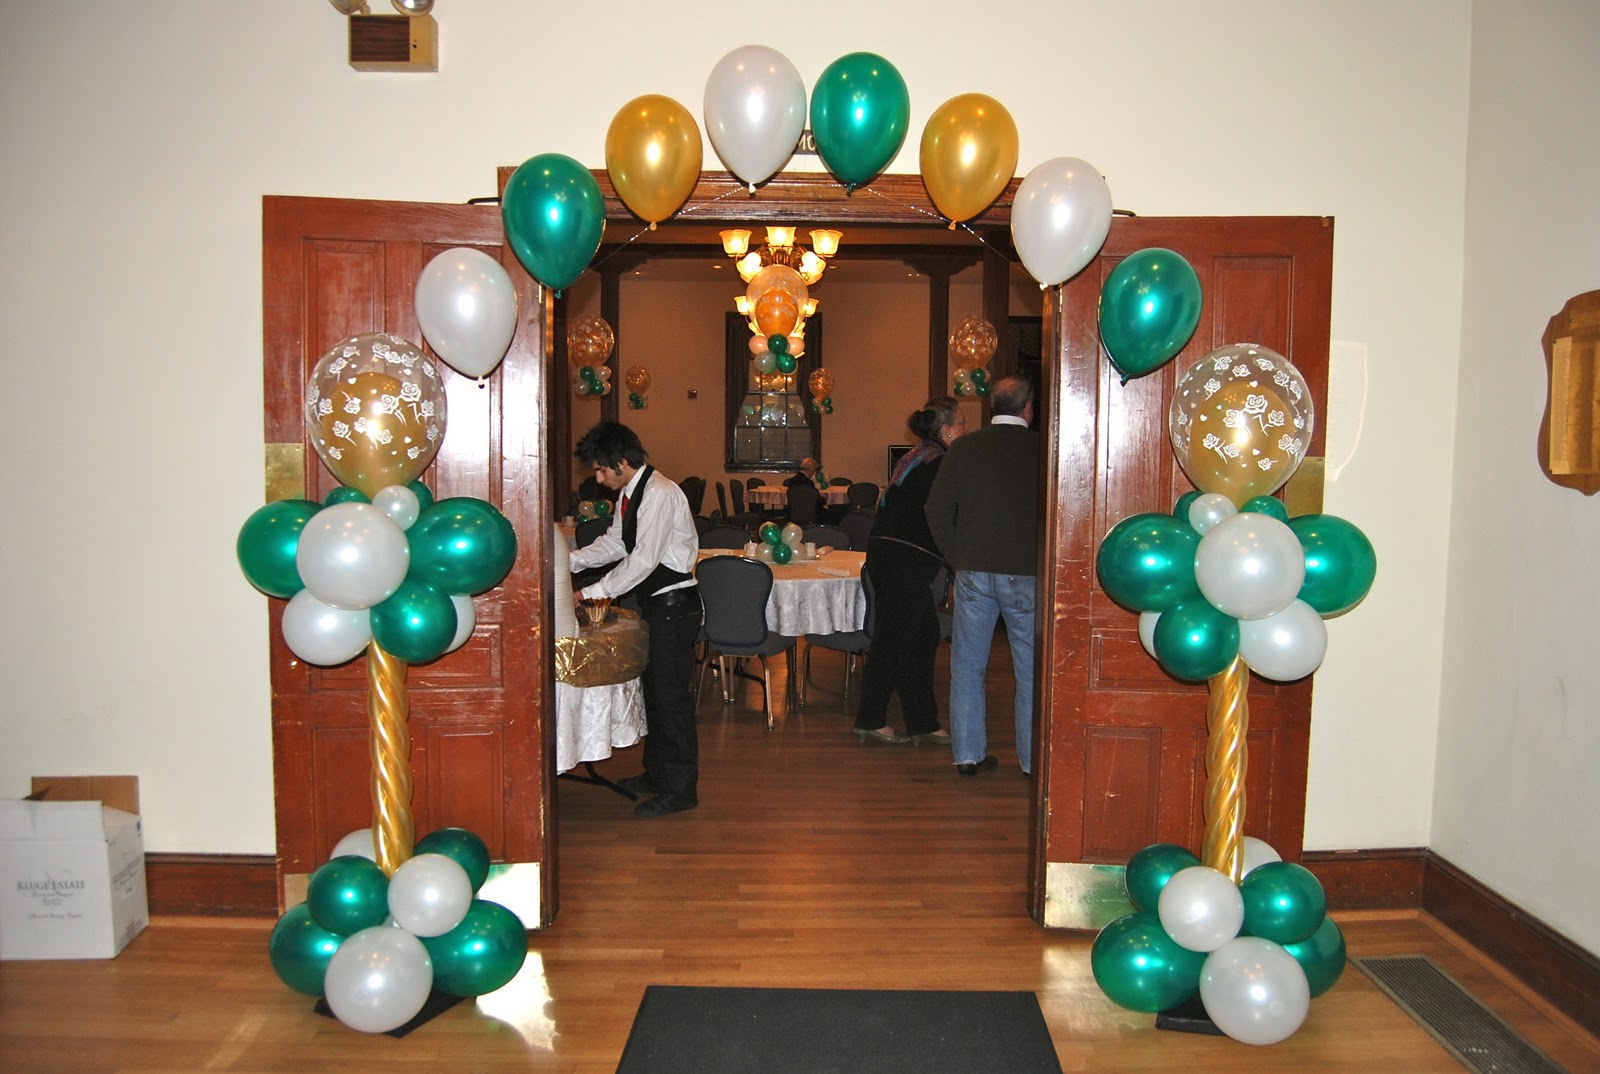 catherine 39 s 50th birthday party old town hall balloon. Black Bedroom Furniture Sets. Home Design Ideas